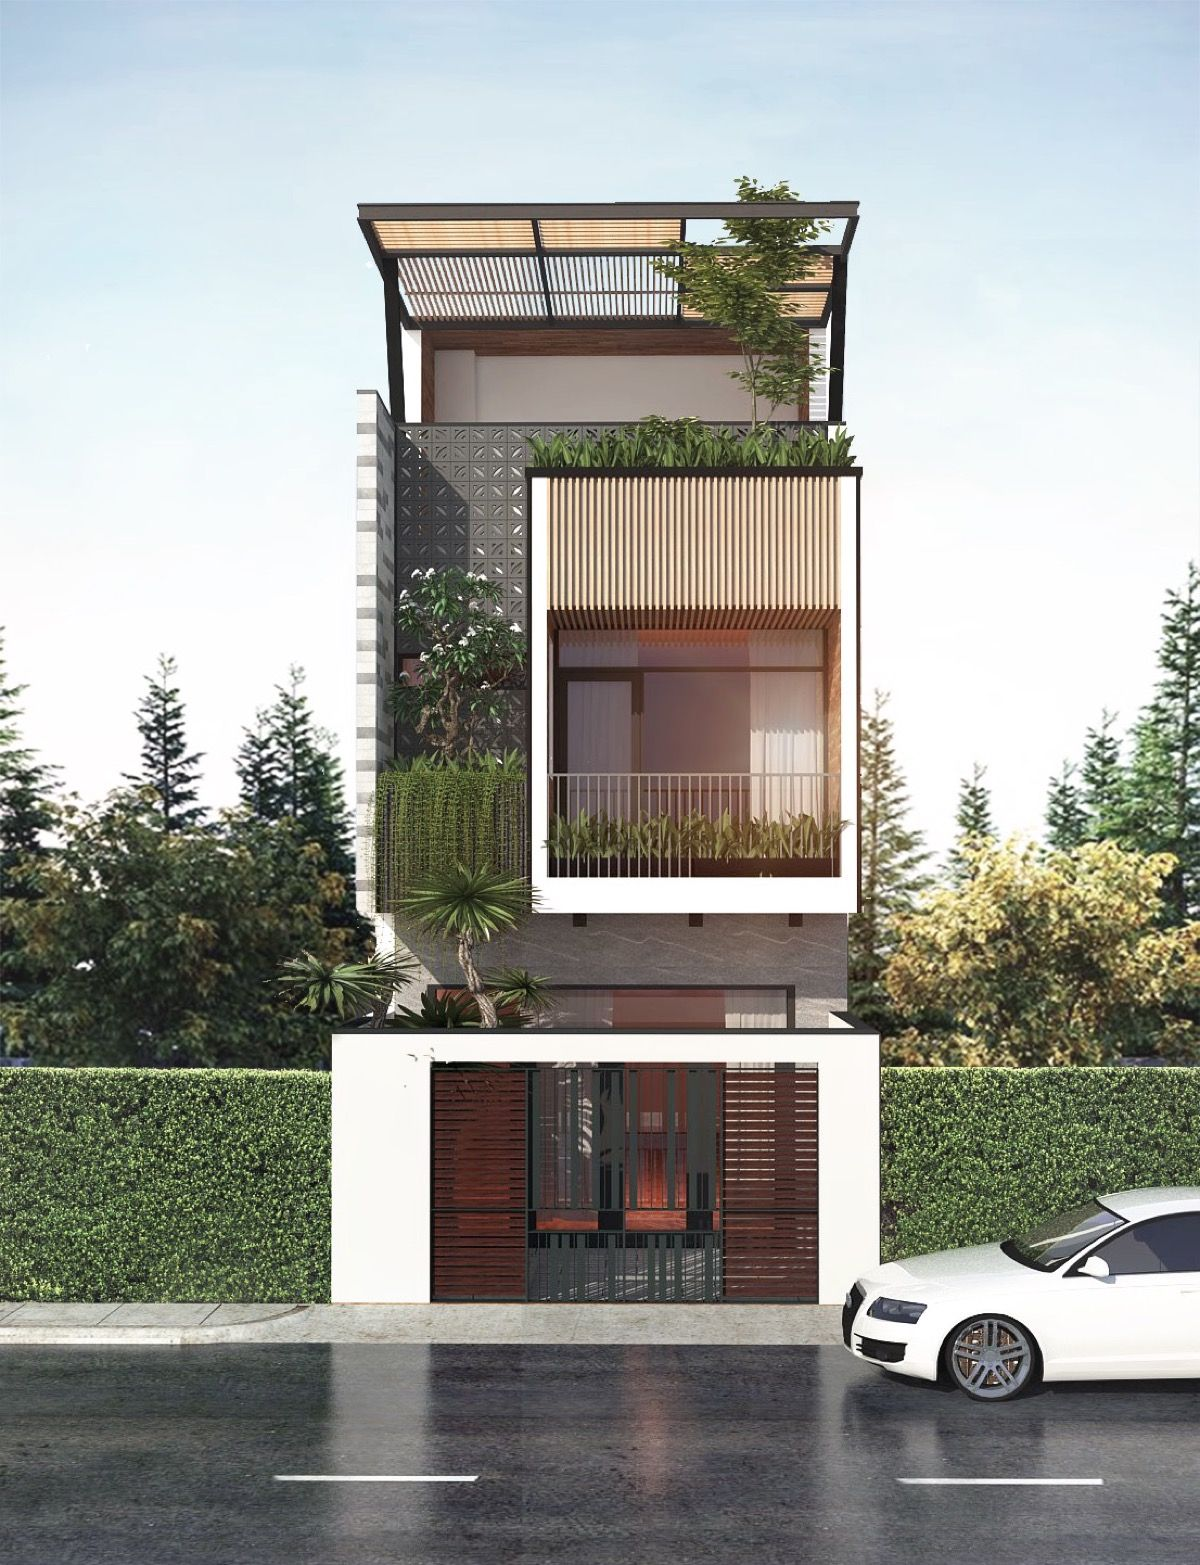 Small House Elevation Design Small House Design Exterior Narrow: 50 Narrow Lot Houses That Transform A Skinny Exterior Into Something Special